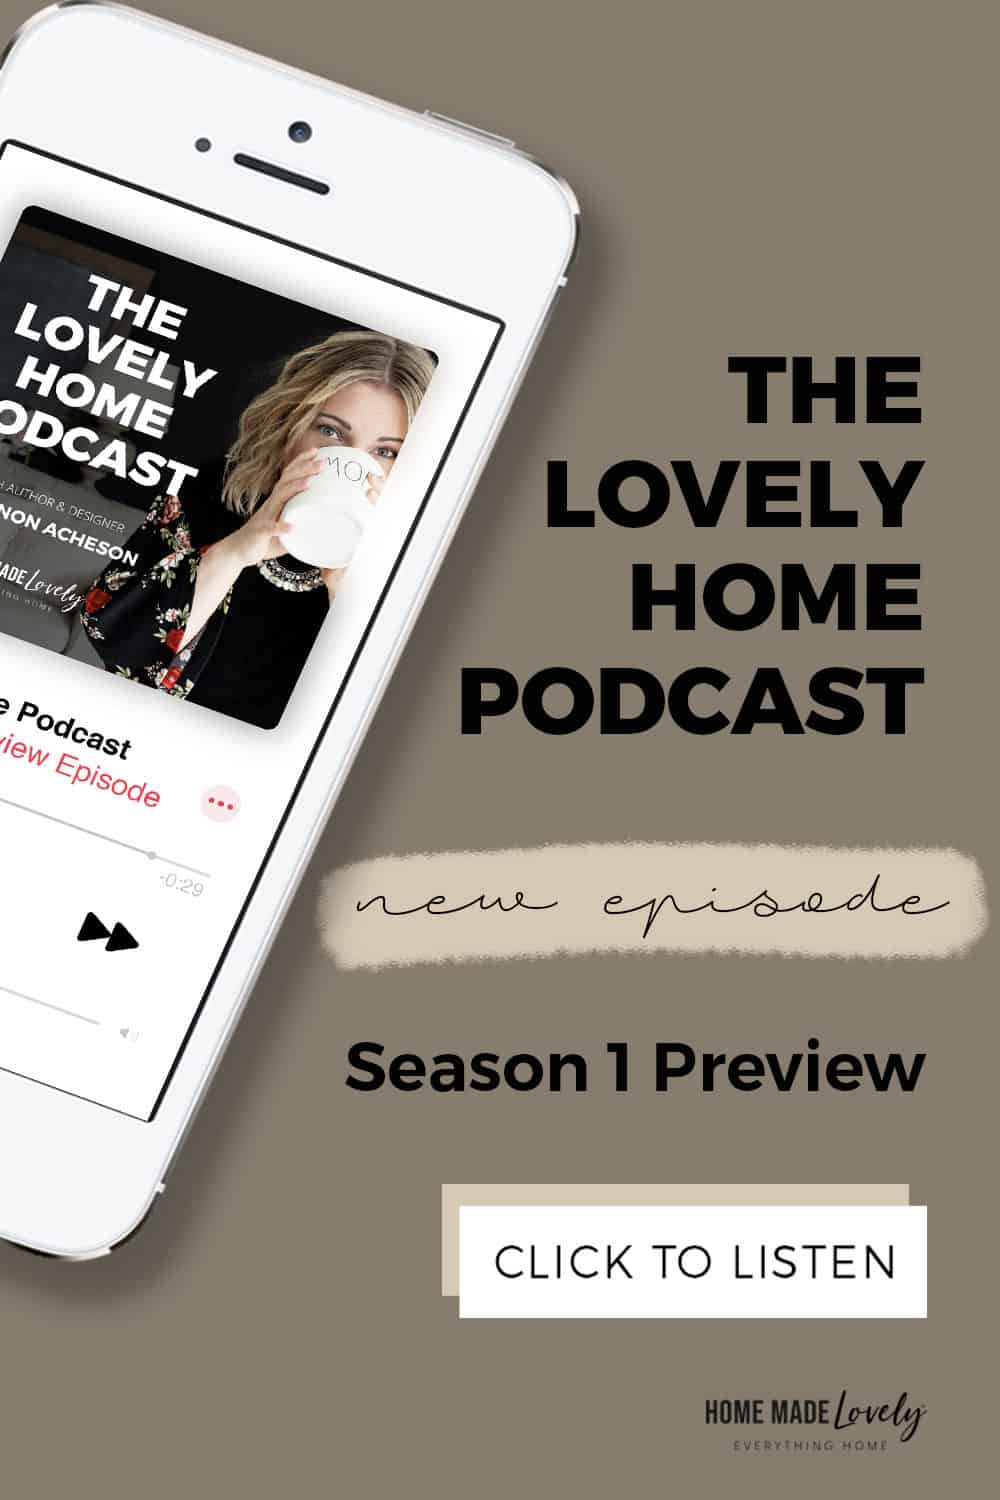 the lovely home podcast new episode season 1 preview click here to listen image